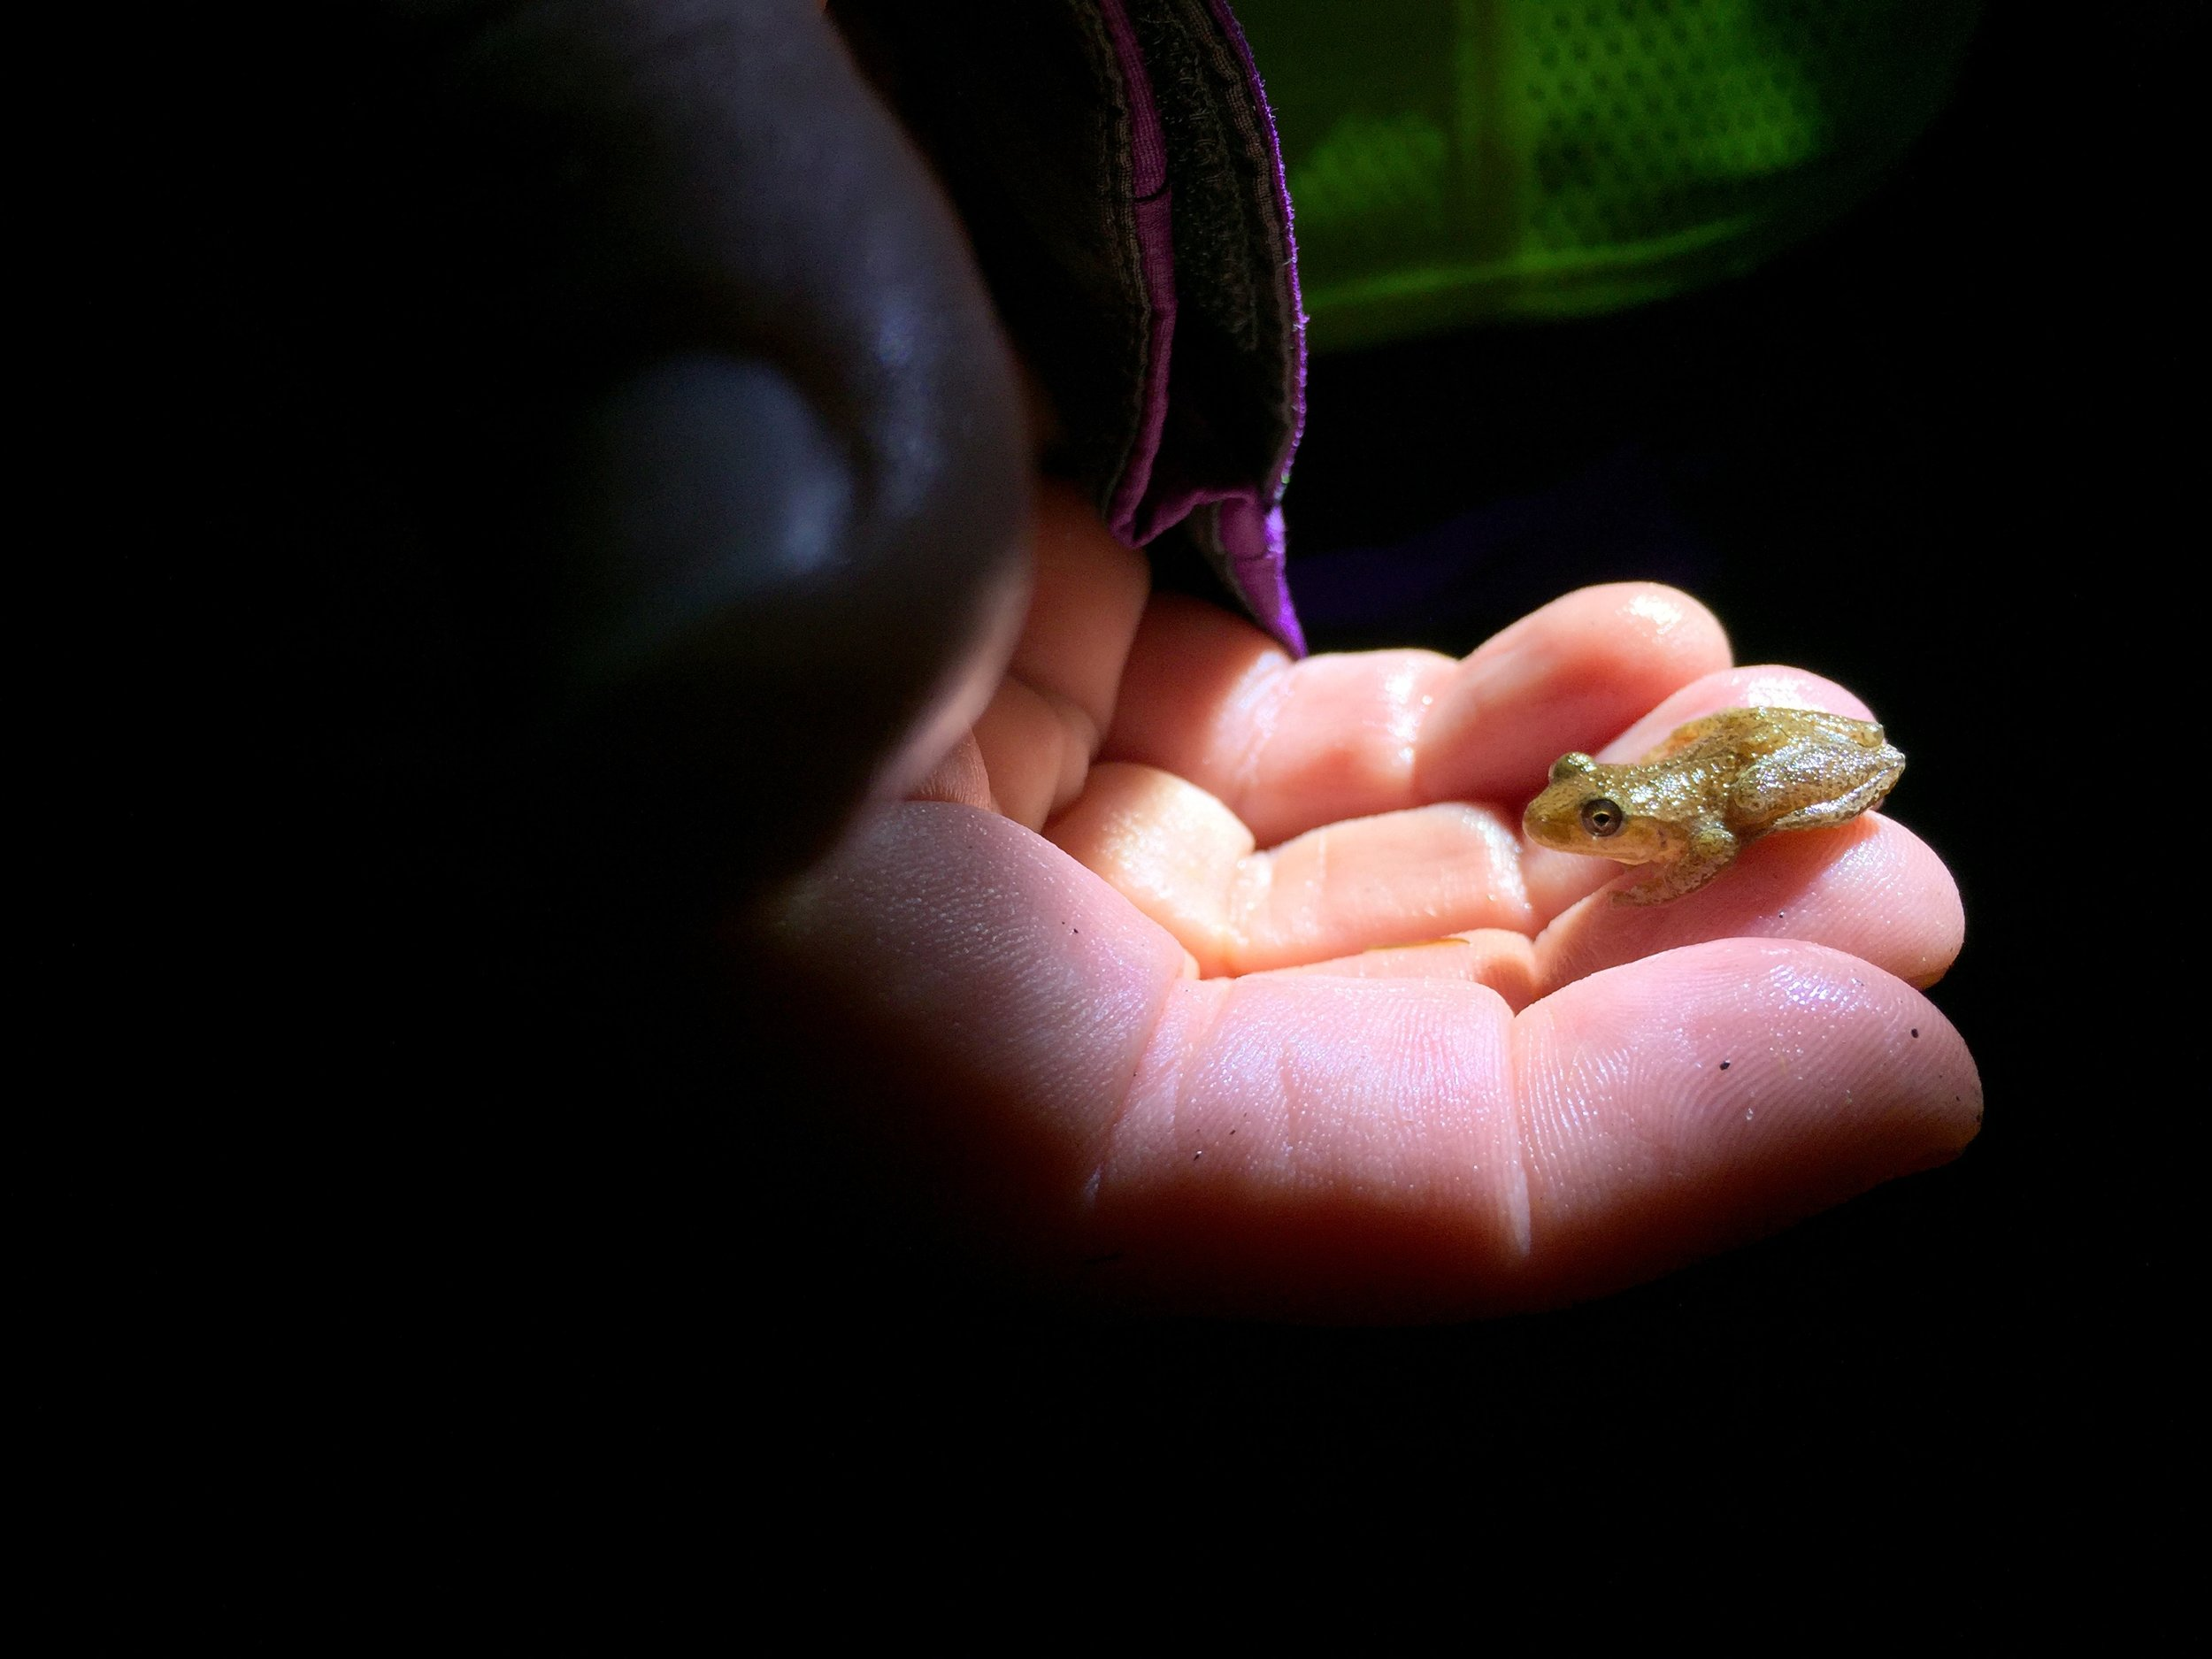 A spring peeper is scooped up by a volunteer and safely transported across the road. Although tiny, these chorus frogs are known for their loud chirping vocals on spring nights. (Anna Miller/Animalia Podcast)